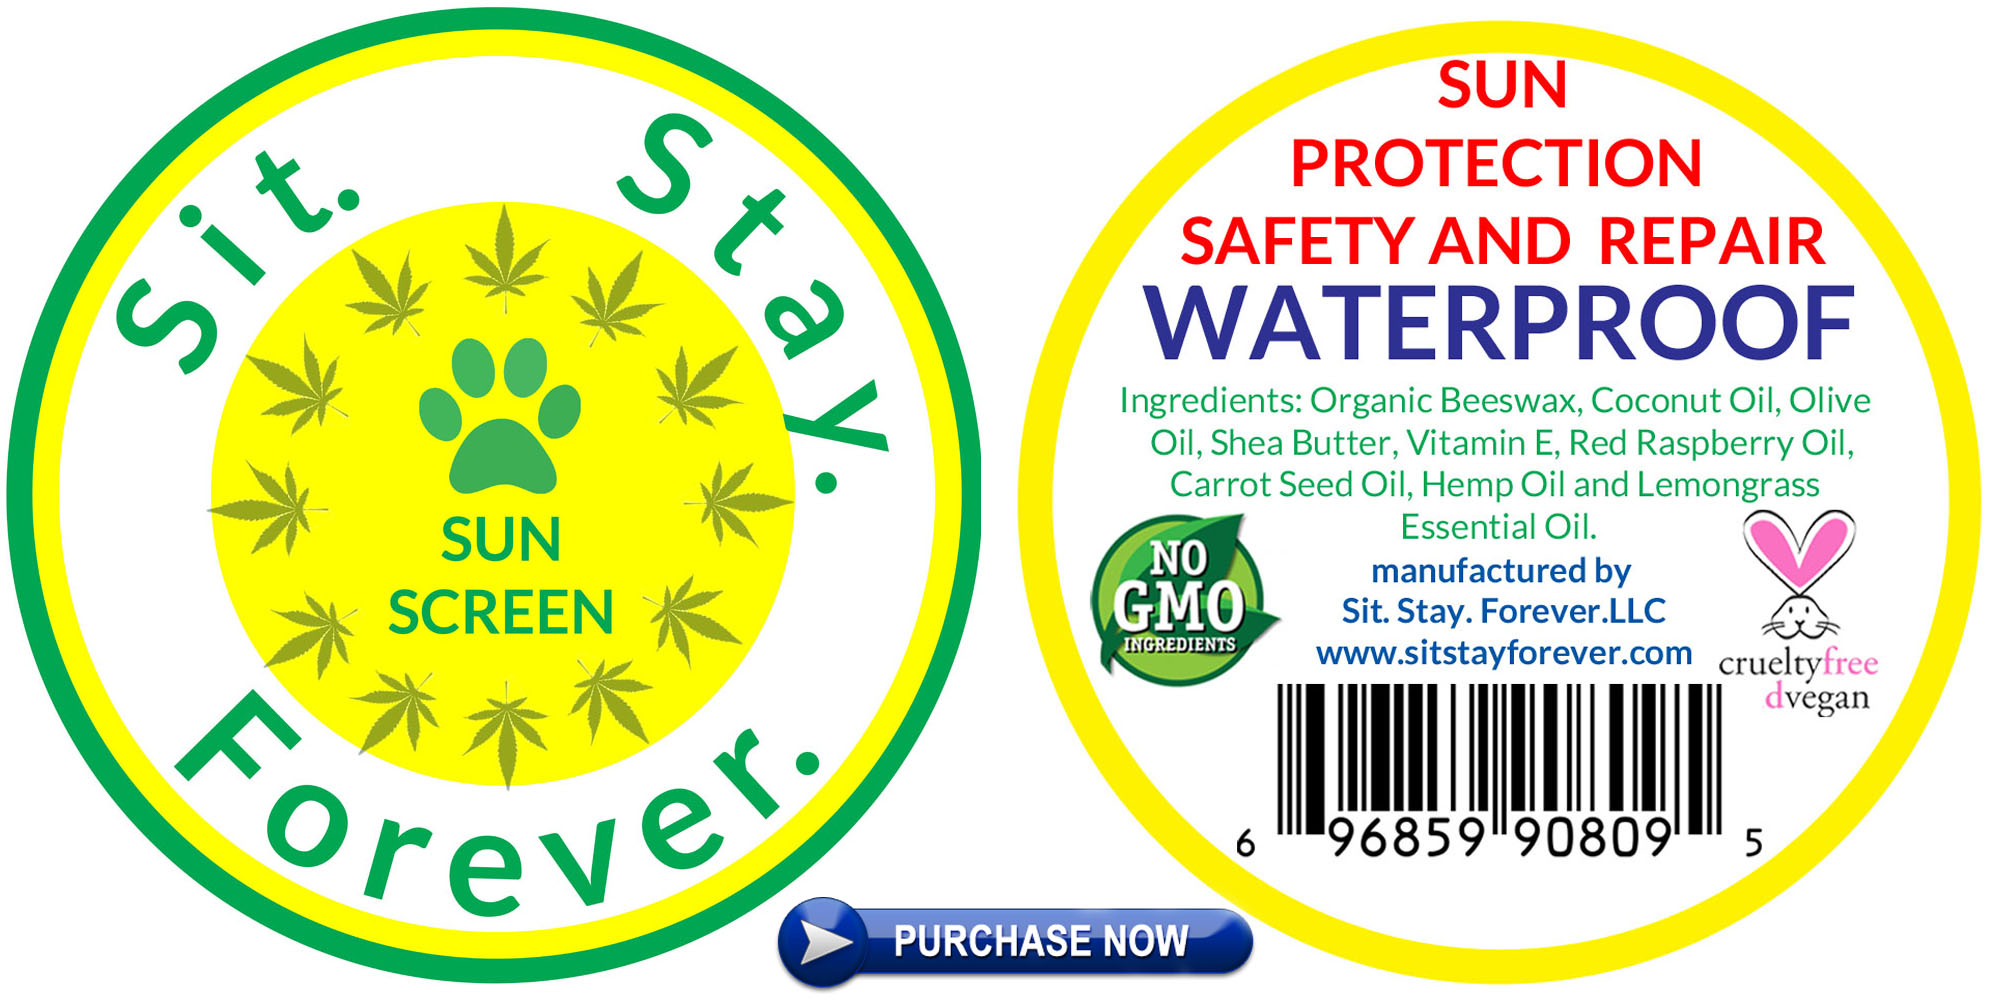 front-and-back-sun-screen-buy-now-hemp-leap-waterproof-960x440.jpg